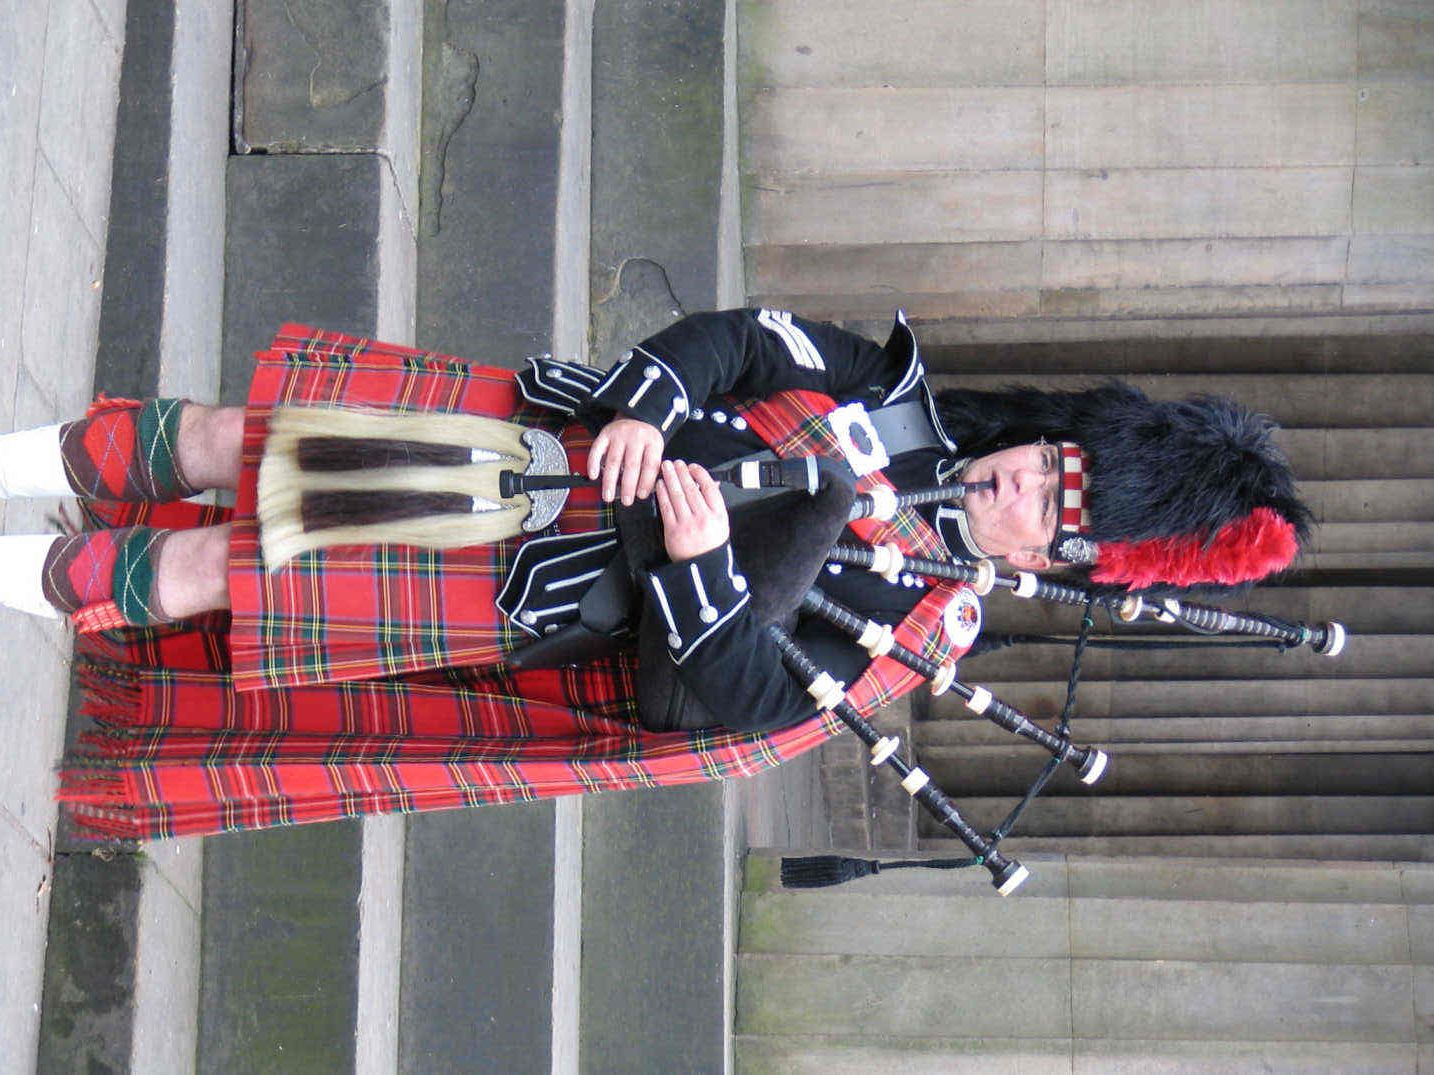 The most beautiful sound in the world? Bagpipes!! And Men